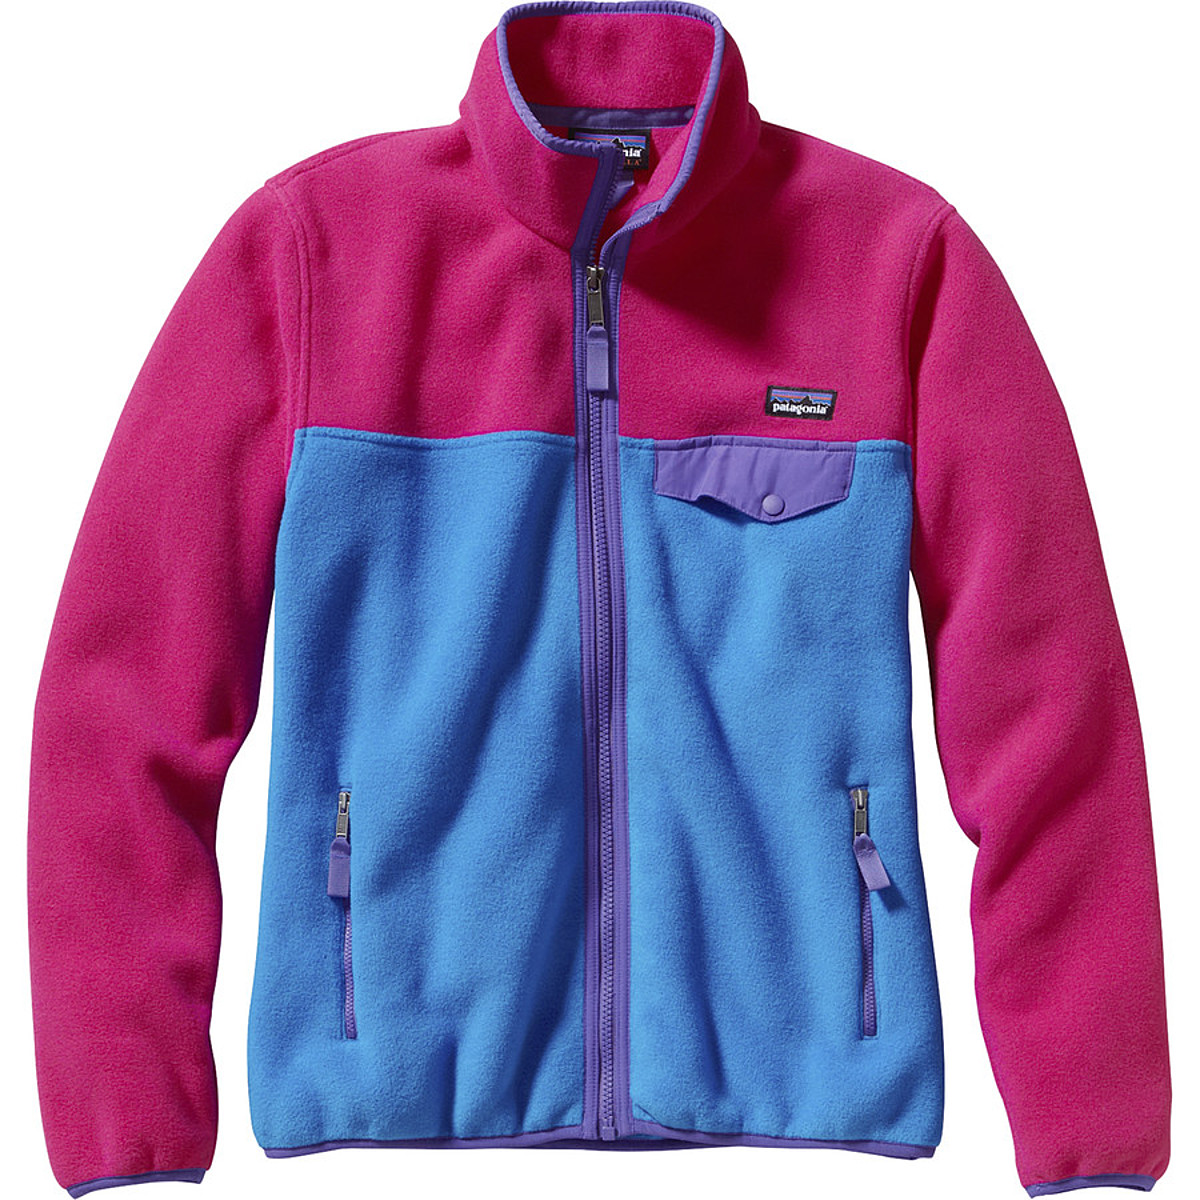 Patagonia Full-Zip Snap-T Jacket